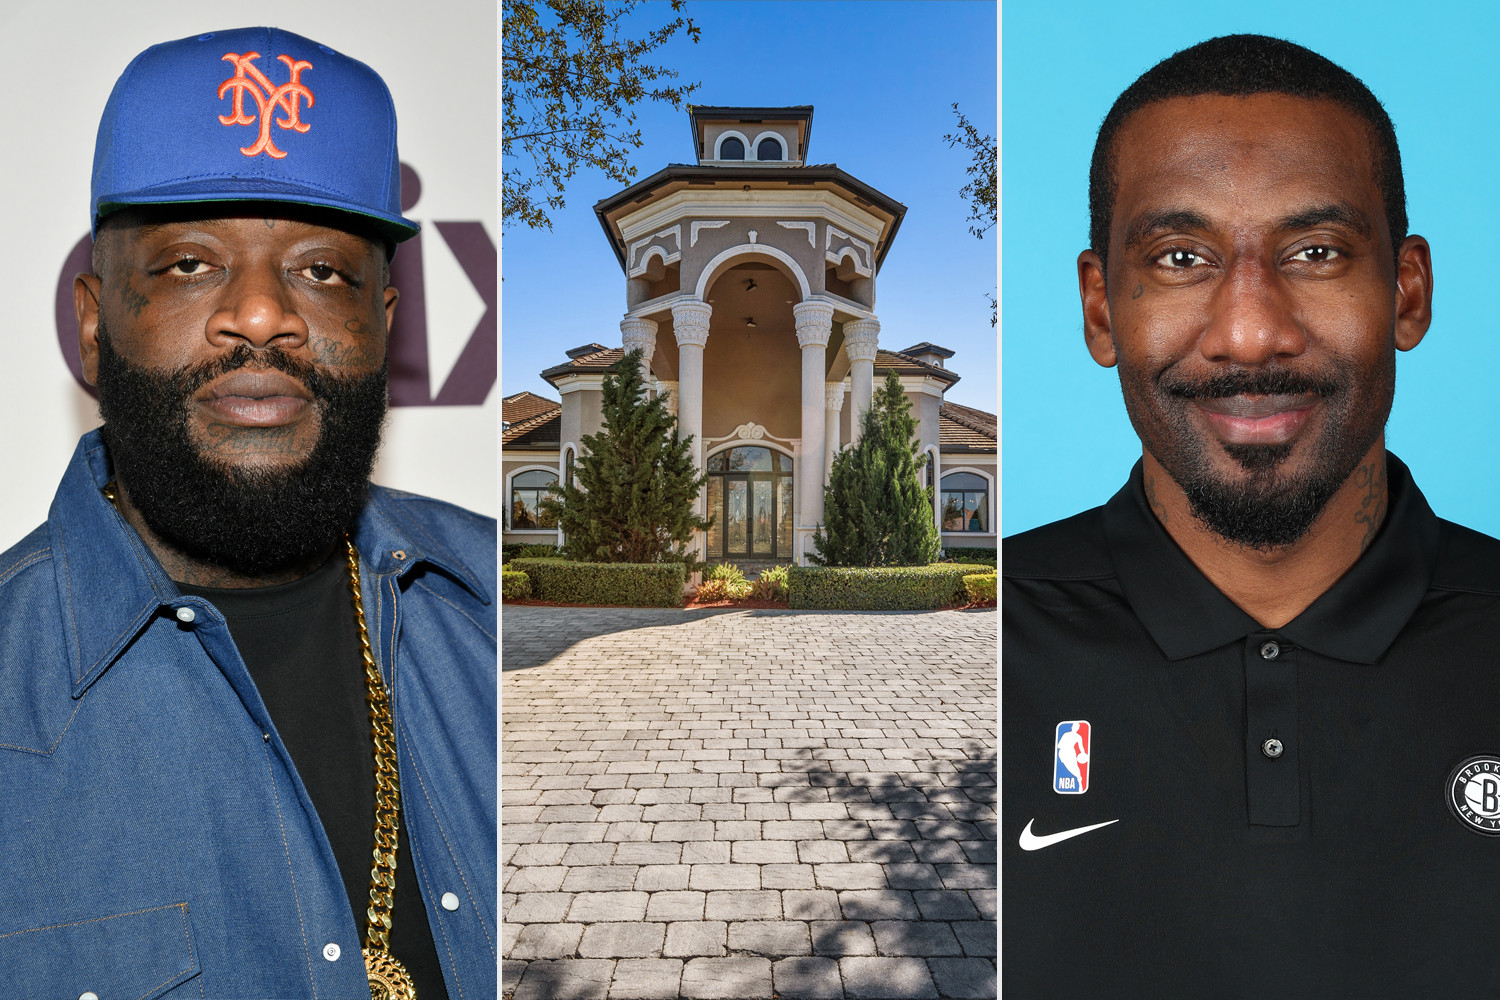 See inside Rick Ross' newly purchased Florida mansion which he bought from ex-NBA star Amar'e Stoudemire for $3.5 Million (photos)